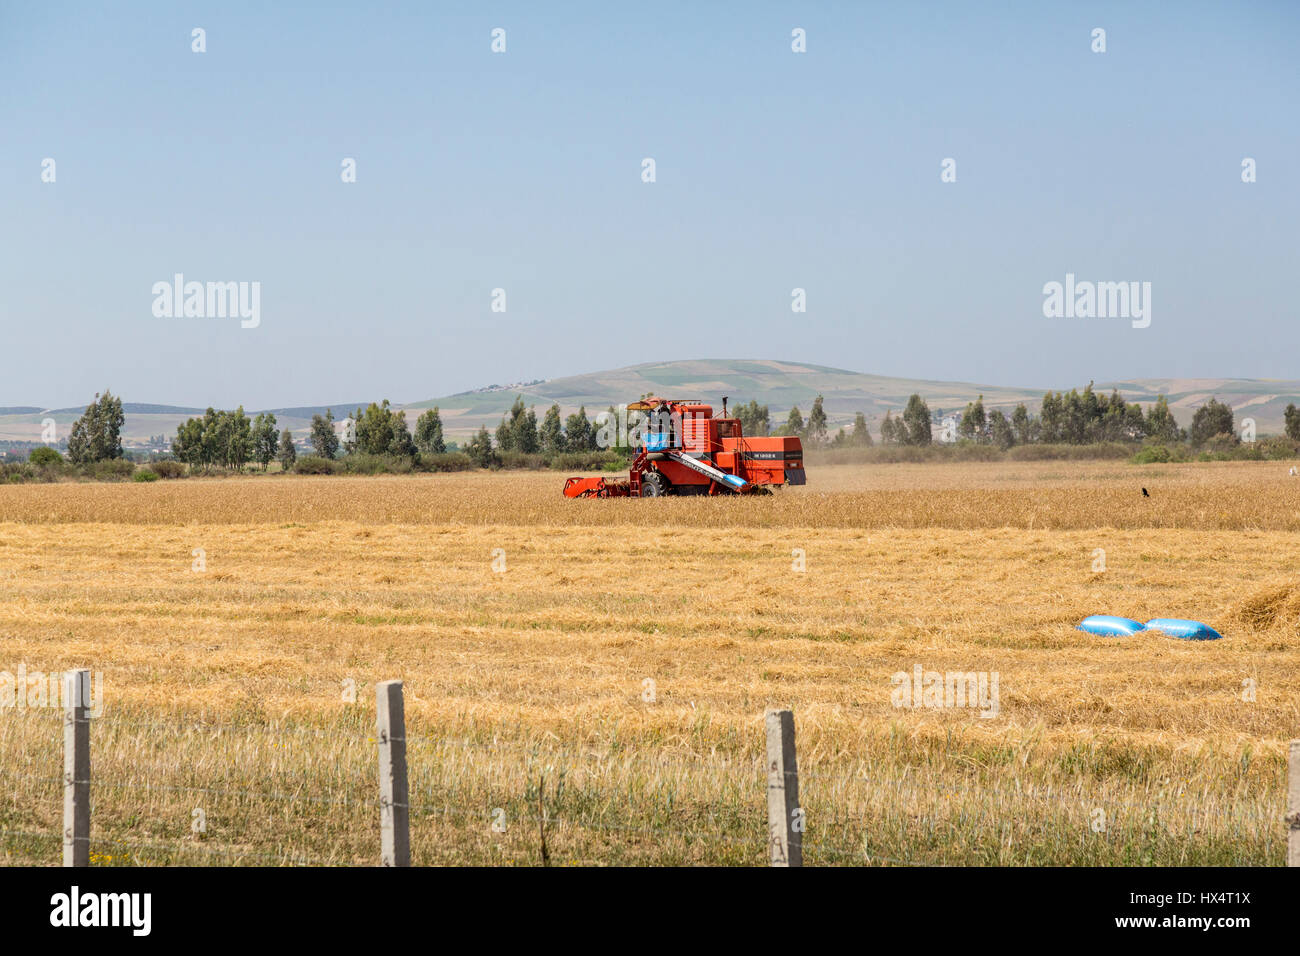 Northern Morocco.  Mechanized Farming in the Rif Region. - Stock Image